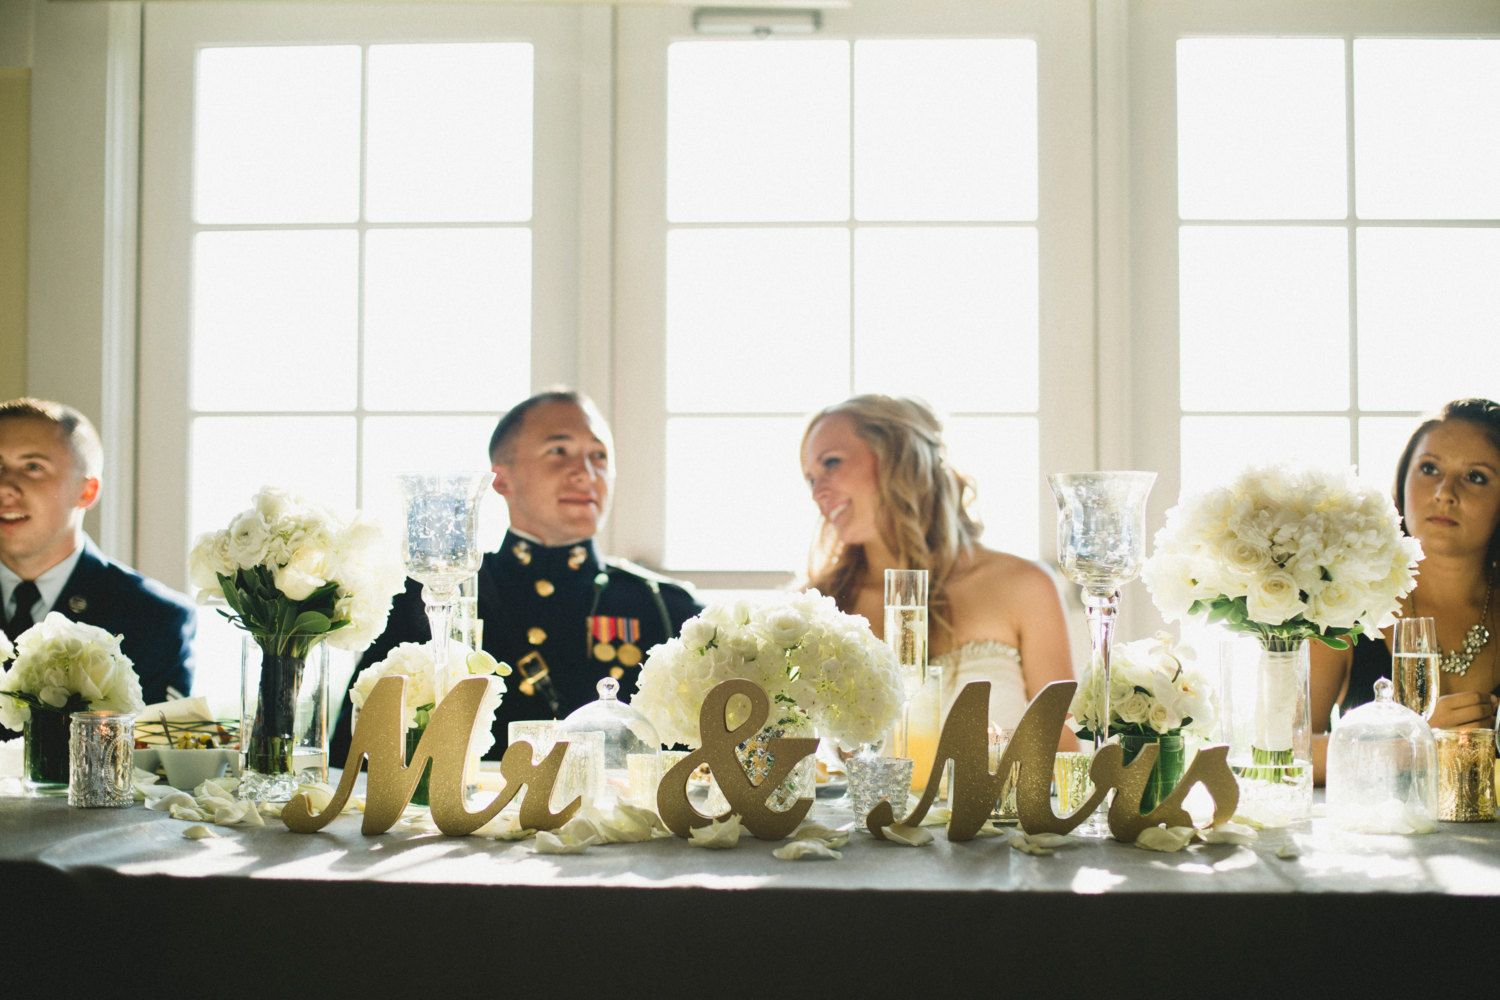 Wedding Sign In Table Decorations Extraordinary Gold Glitter Mr And Mrs Wedding Signs For Sweetheart Table Decor Design Inspiration